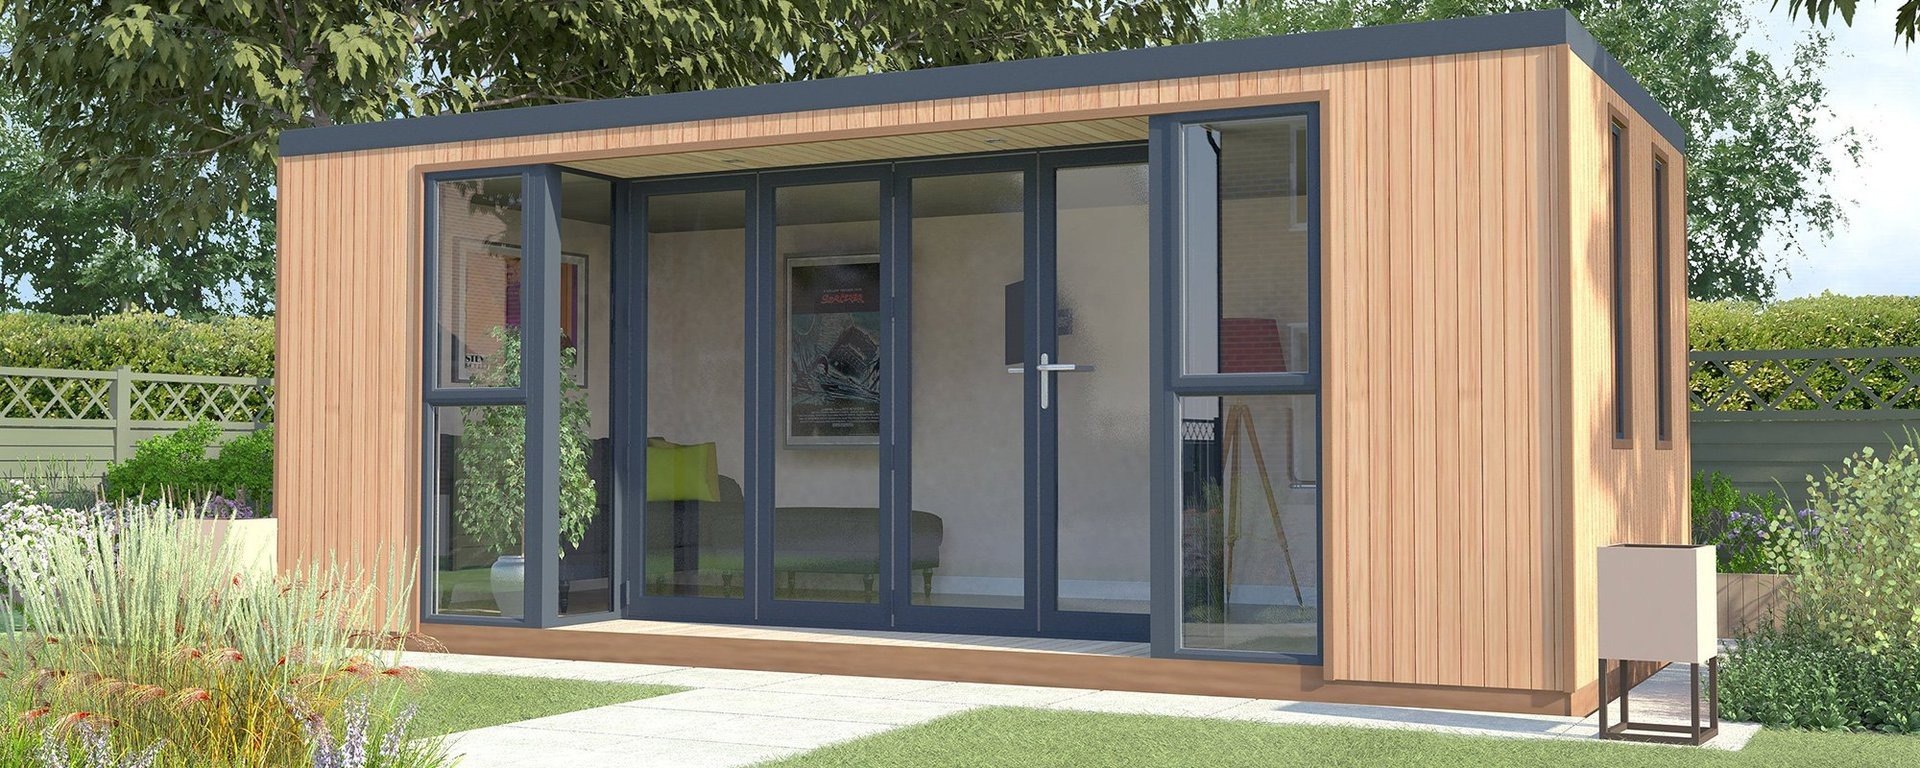 Garden Room Apple Home Improvements